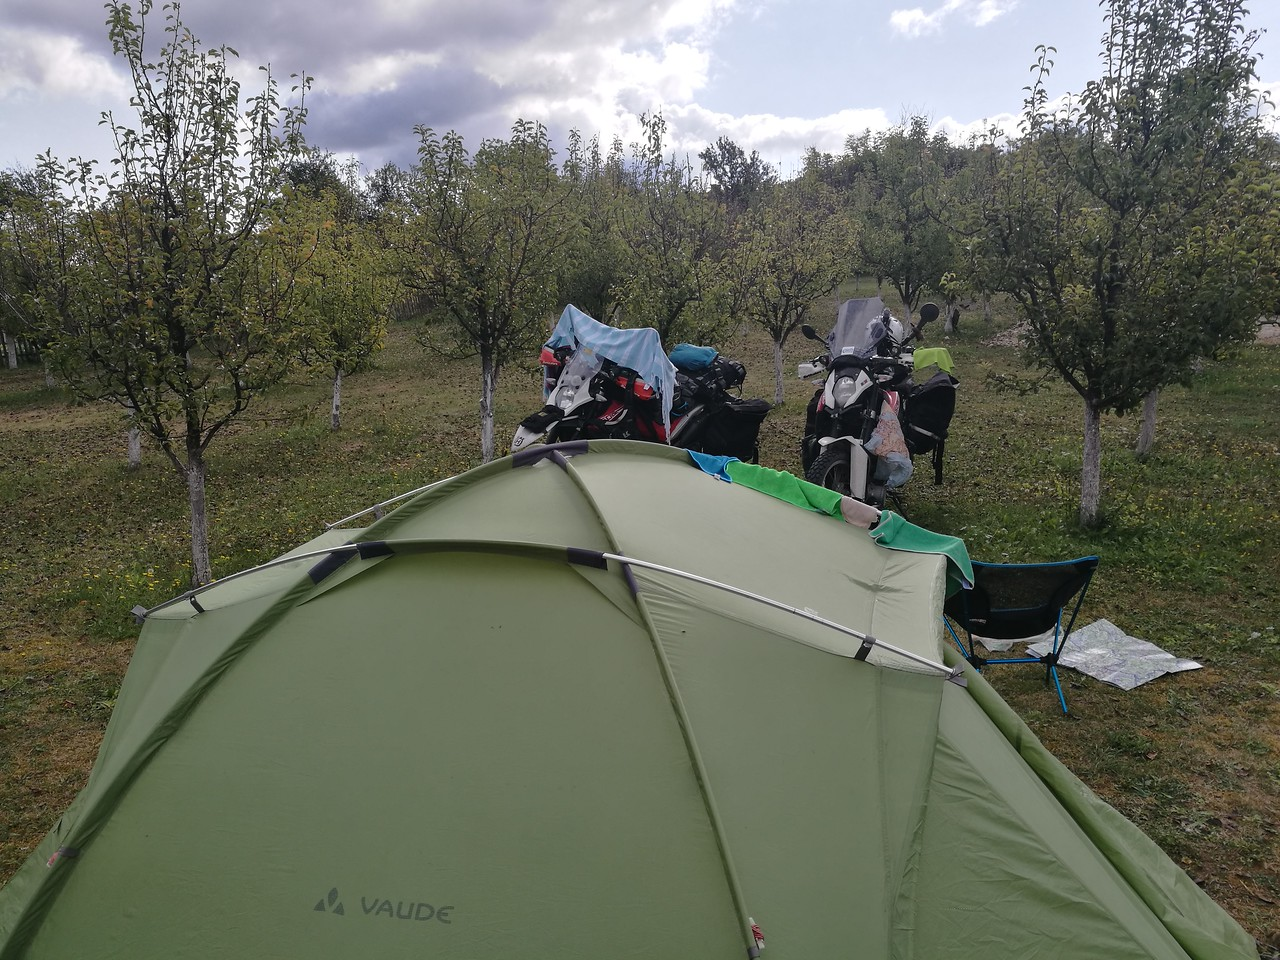 Our tent in the pear orchard